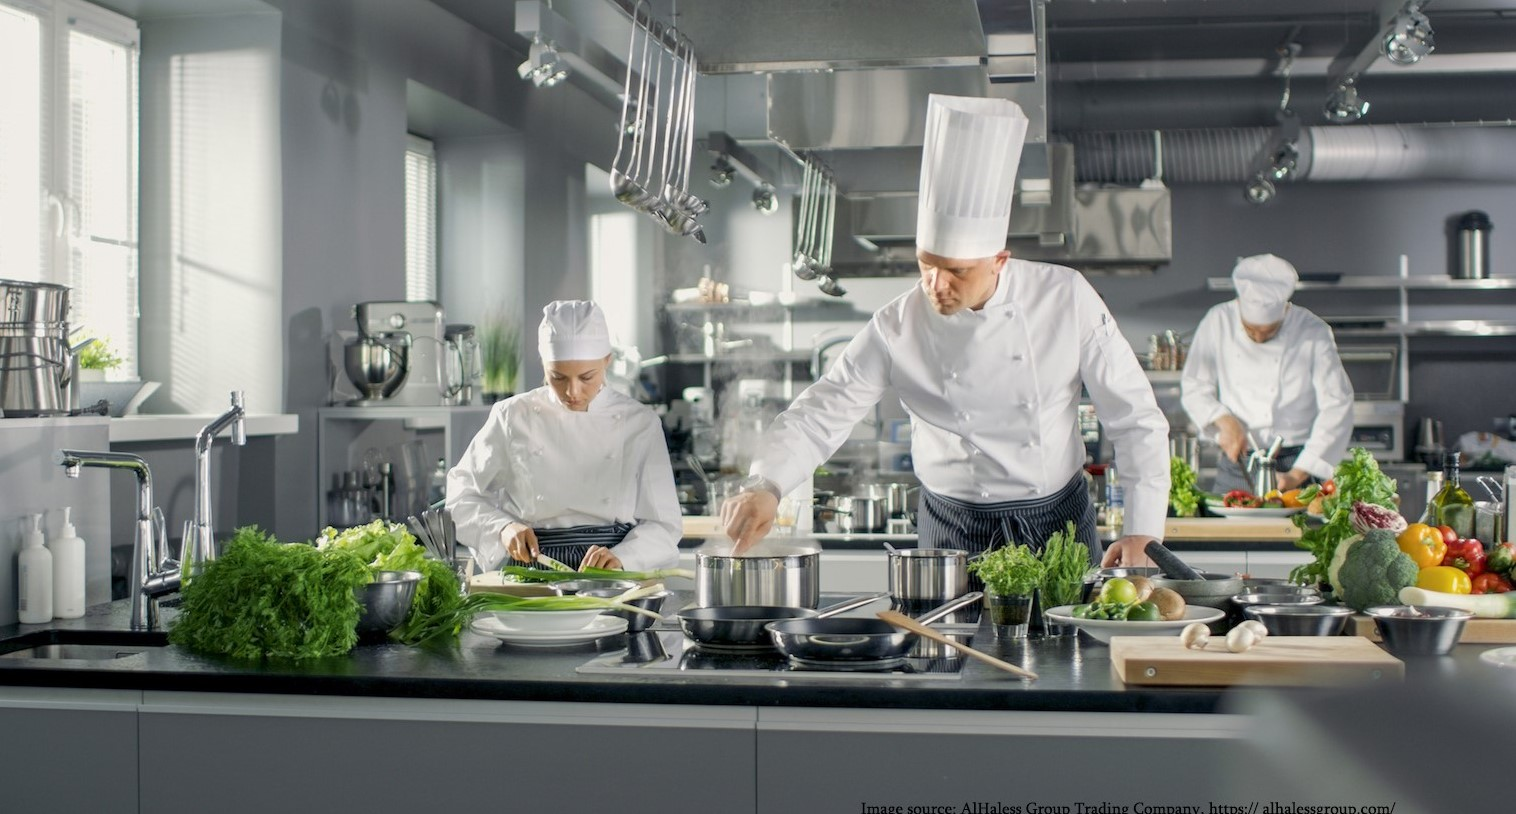 How a Management System Improves the Daily Operation of Central Kitchen